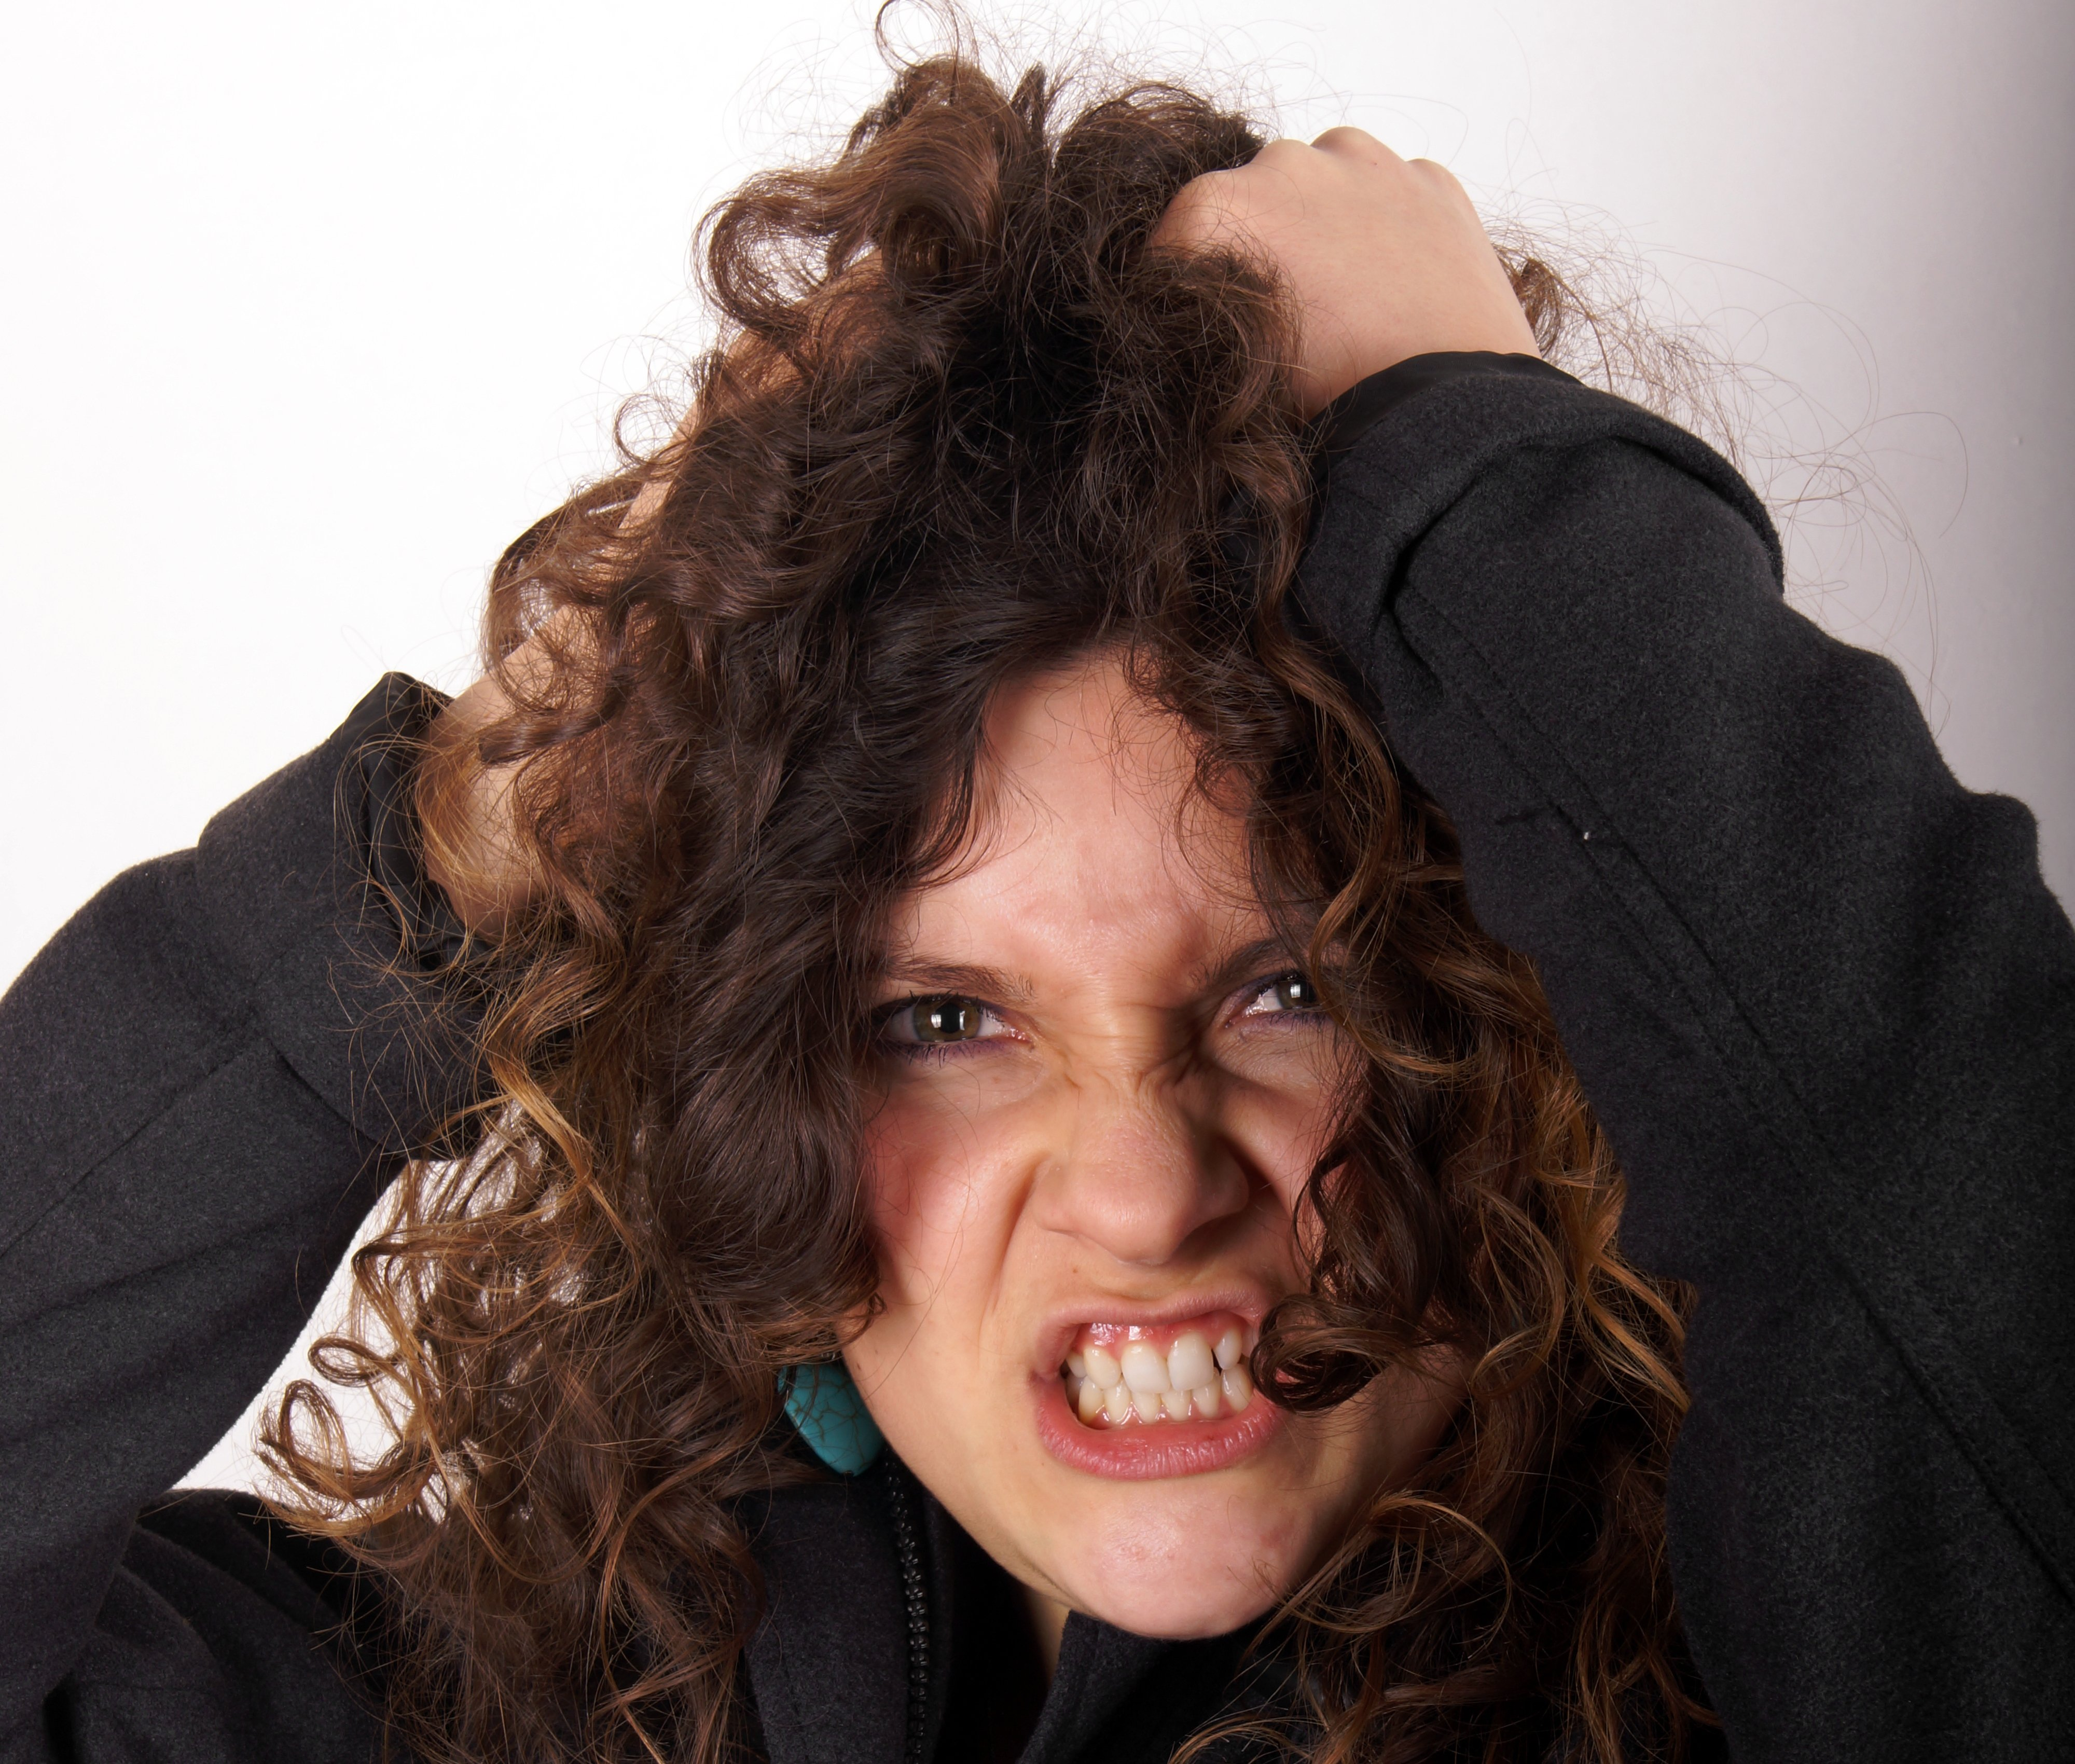 stress pulling hair woman angry pain